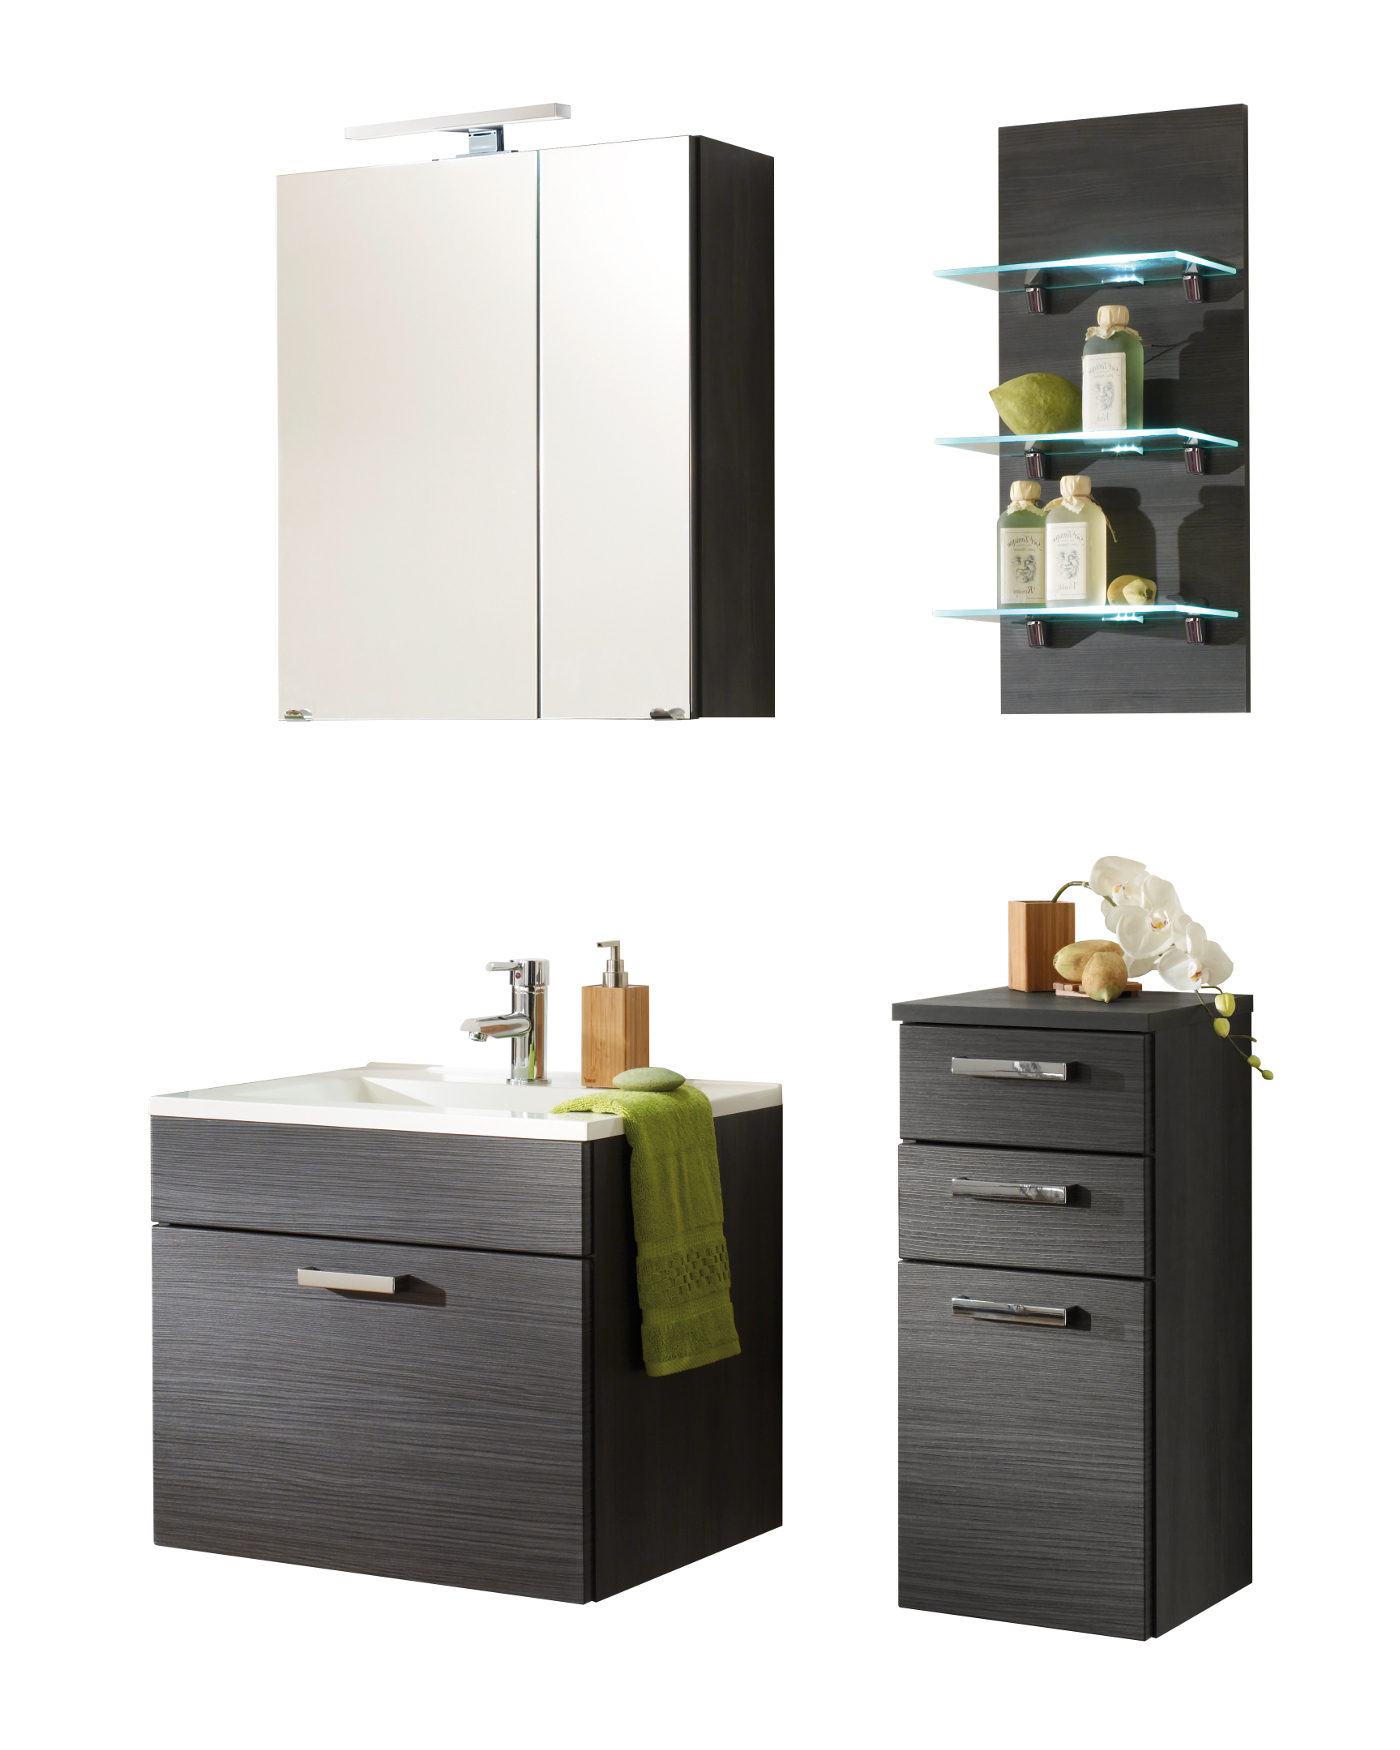 badm bel set marano mit spiegelschrank 6 teilig 90 cm breit grau bad badm belsets. Black Bedroom Furniture Sets. Home Design Ideas